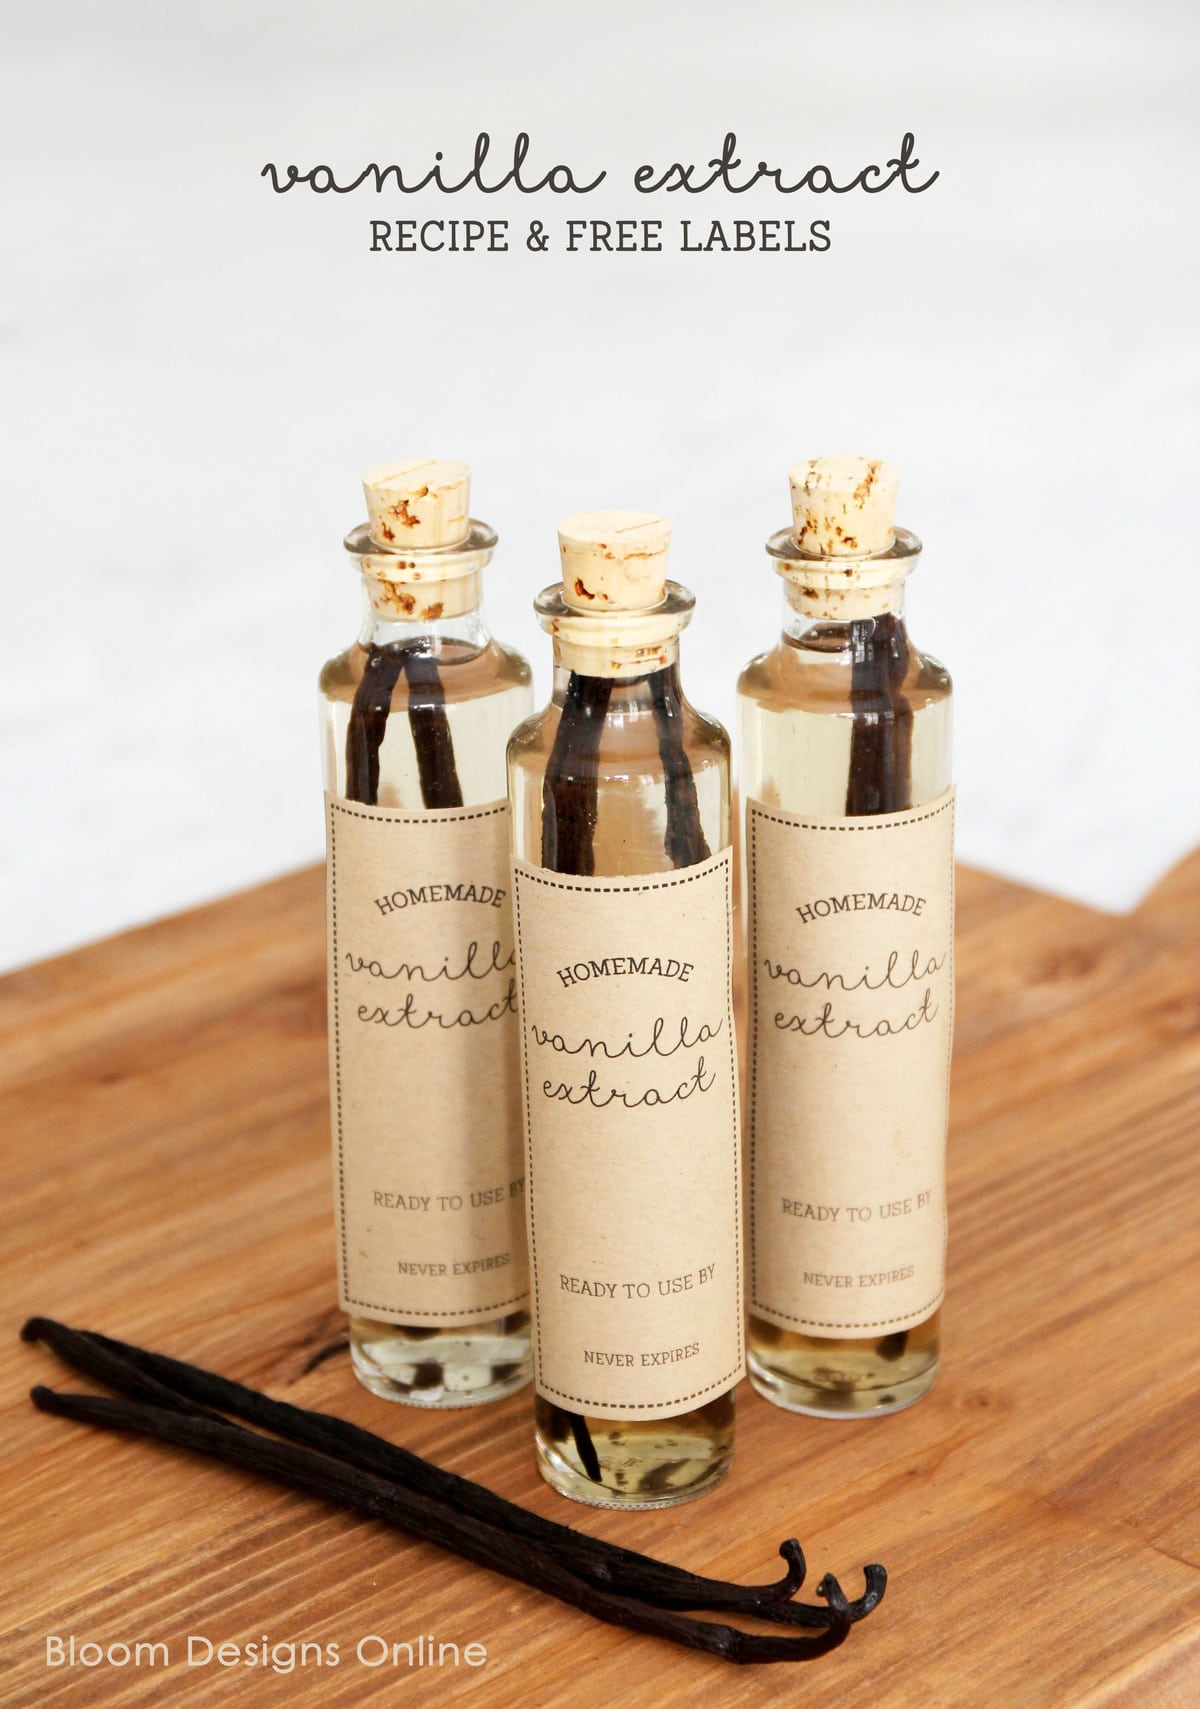 Homemade Vanilla Extract and gift idea. Such a simple and yummy handmade gift idea for anytime (especially the holidays!!) Get the free printable tags for this cute gift!